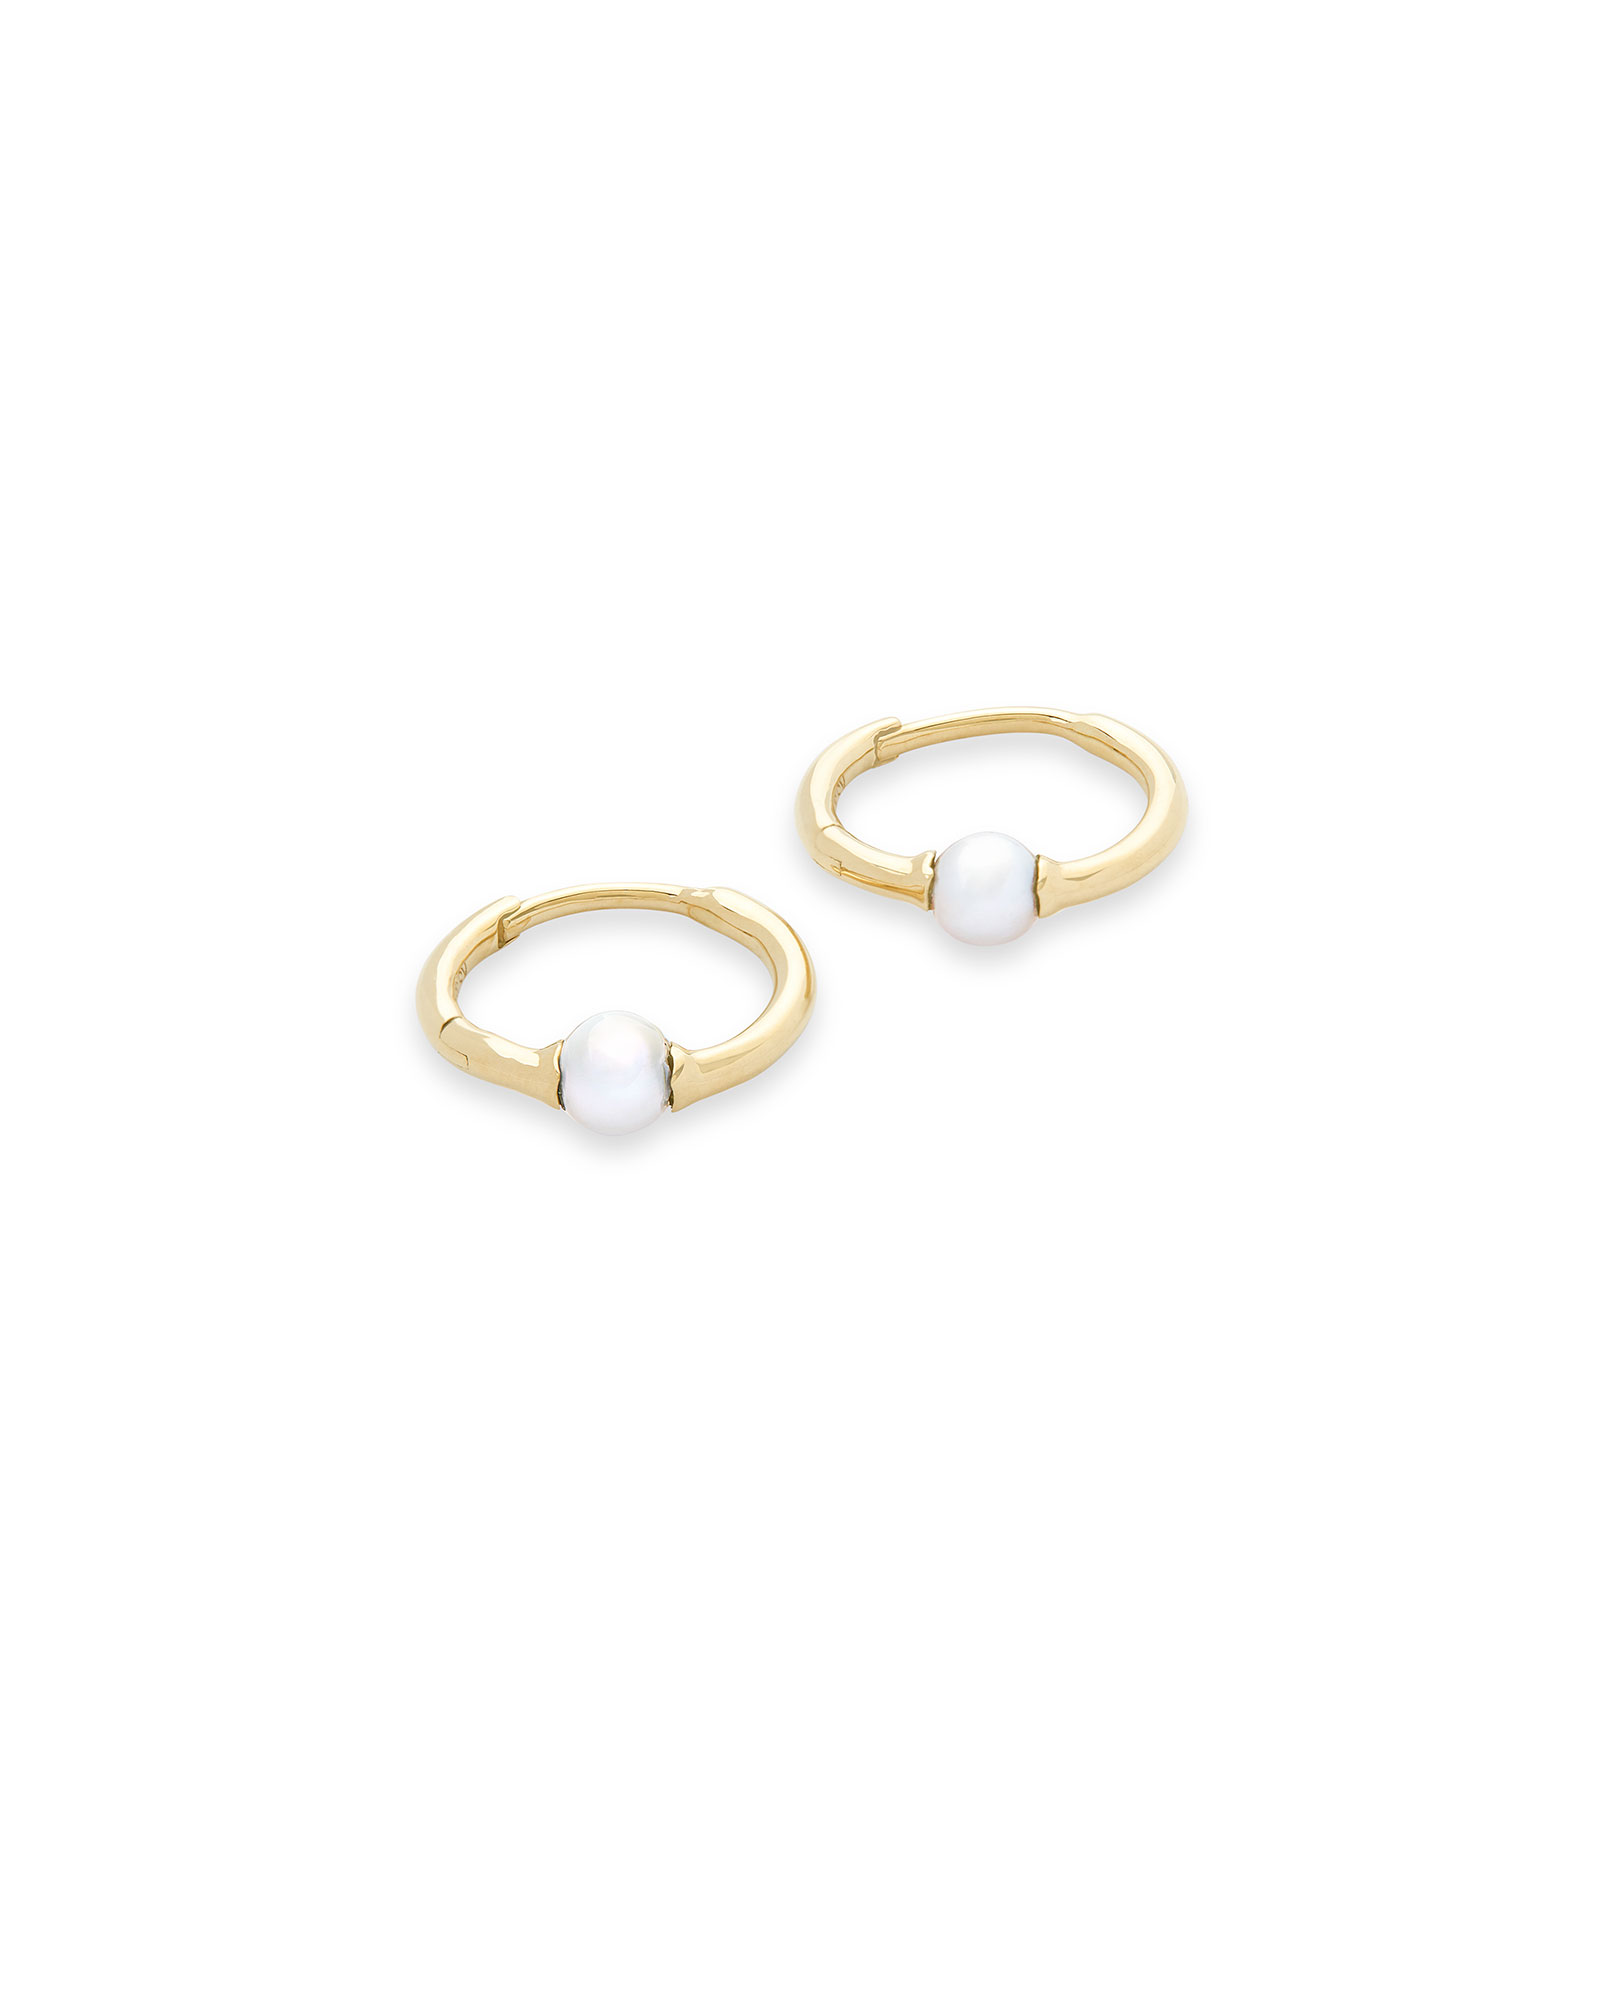 Cathleen 14k Yellow Gold Huggie Earrings in Pearl